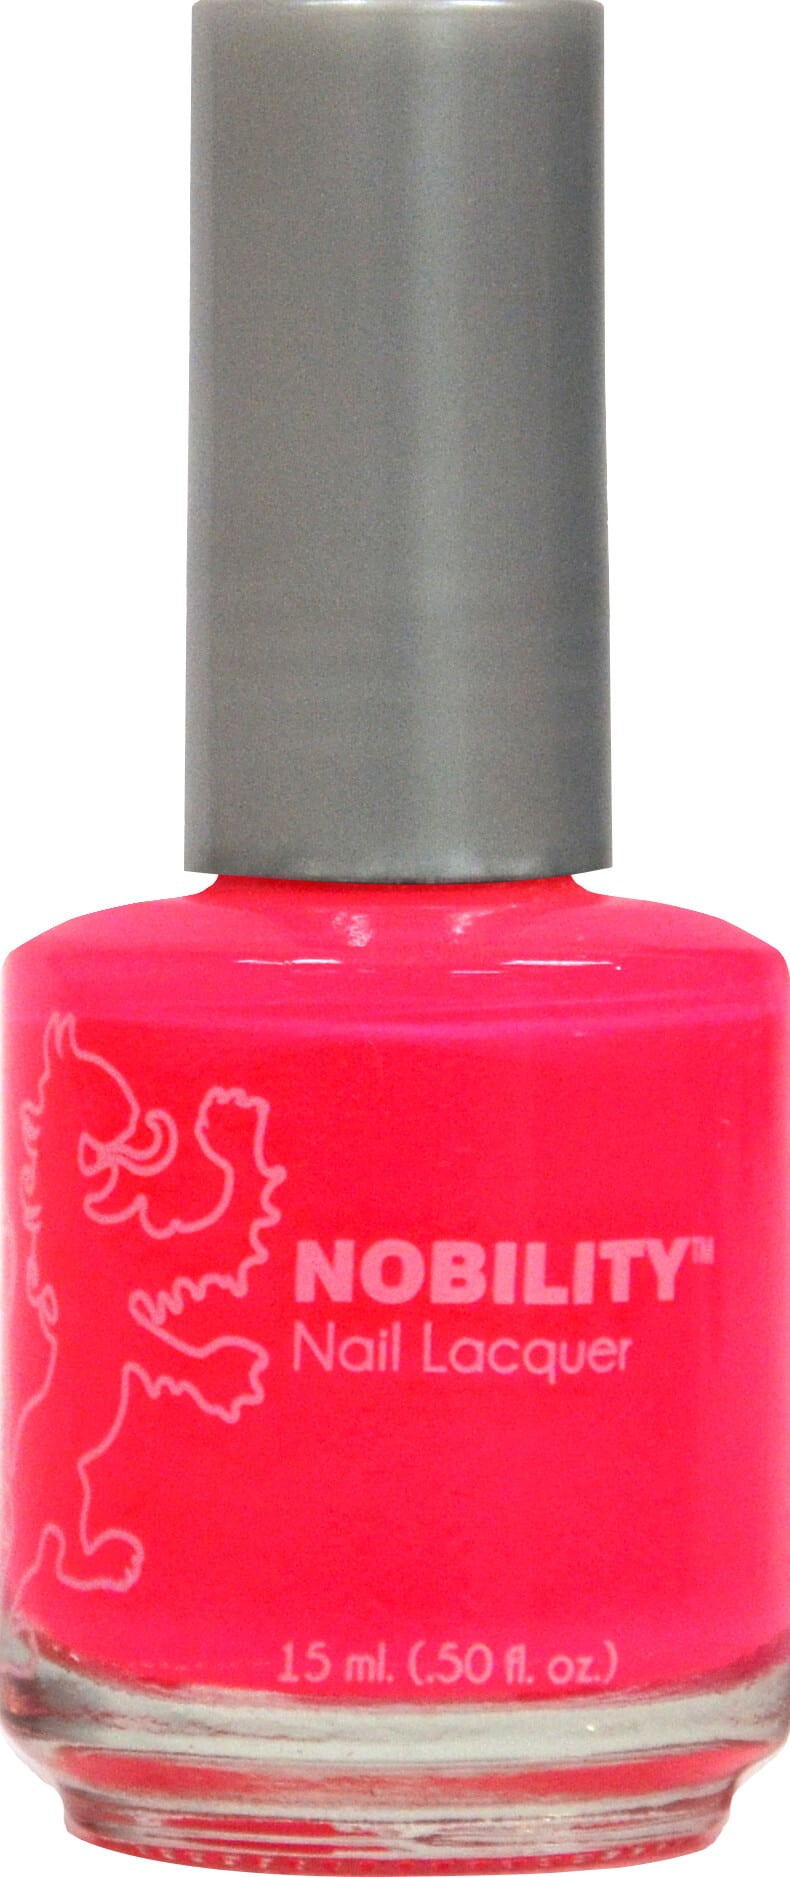 Nobility Nail Lacquer - Hot Pink | LeChat Nails